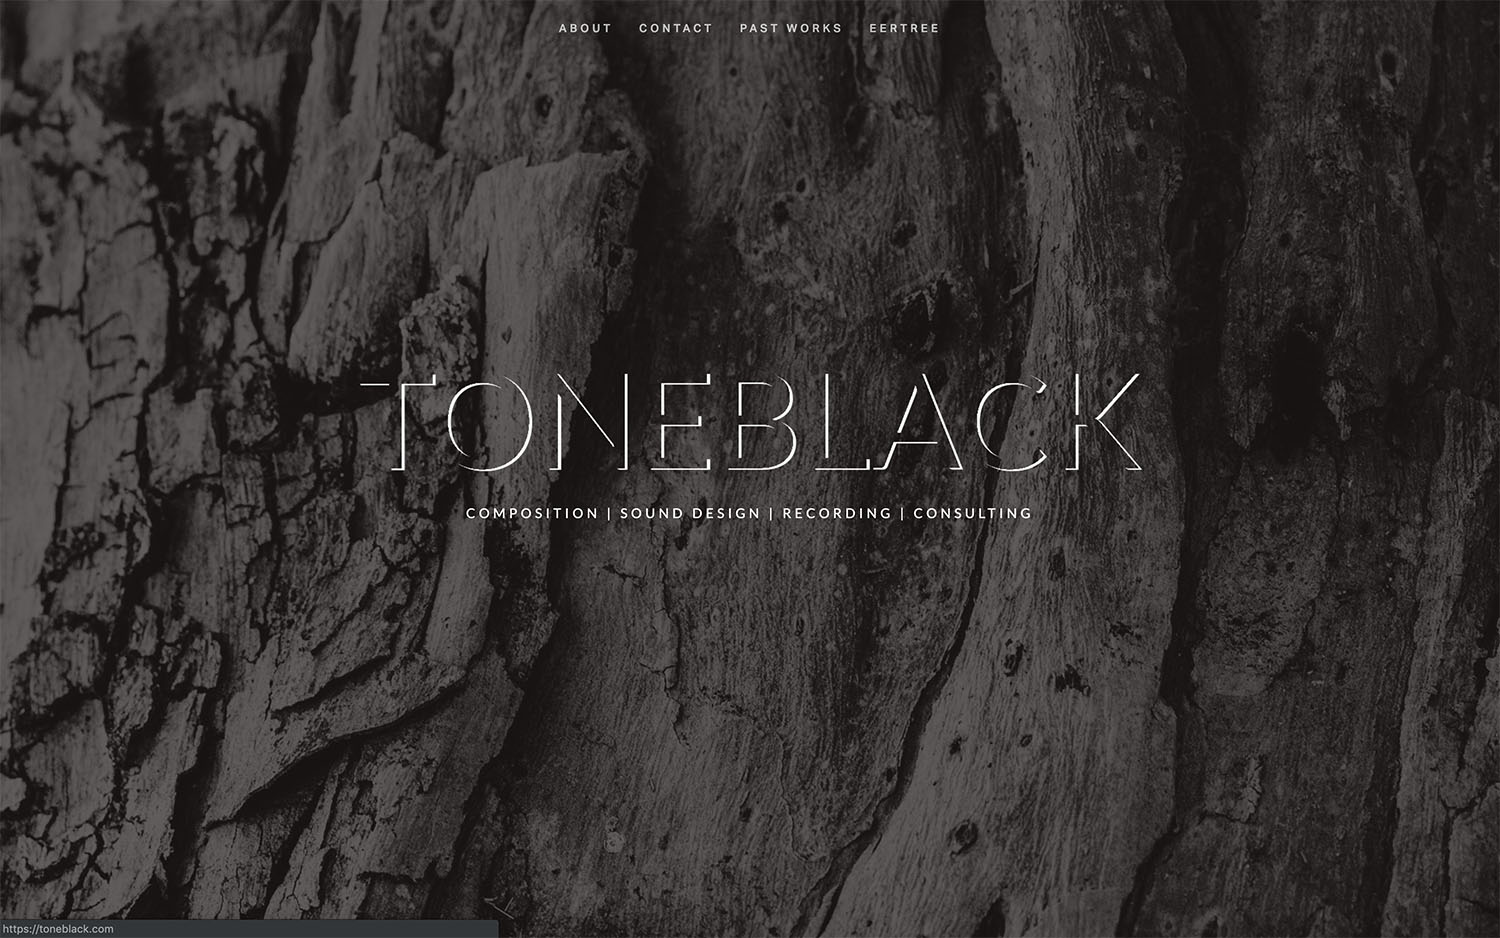 Tone Black Productions - Independent audio production company.Site designed & launched January 2018.